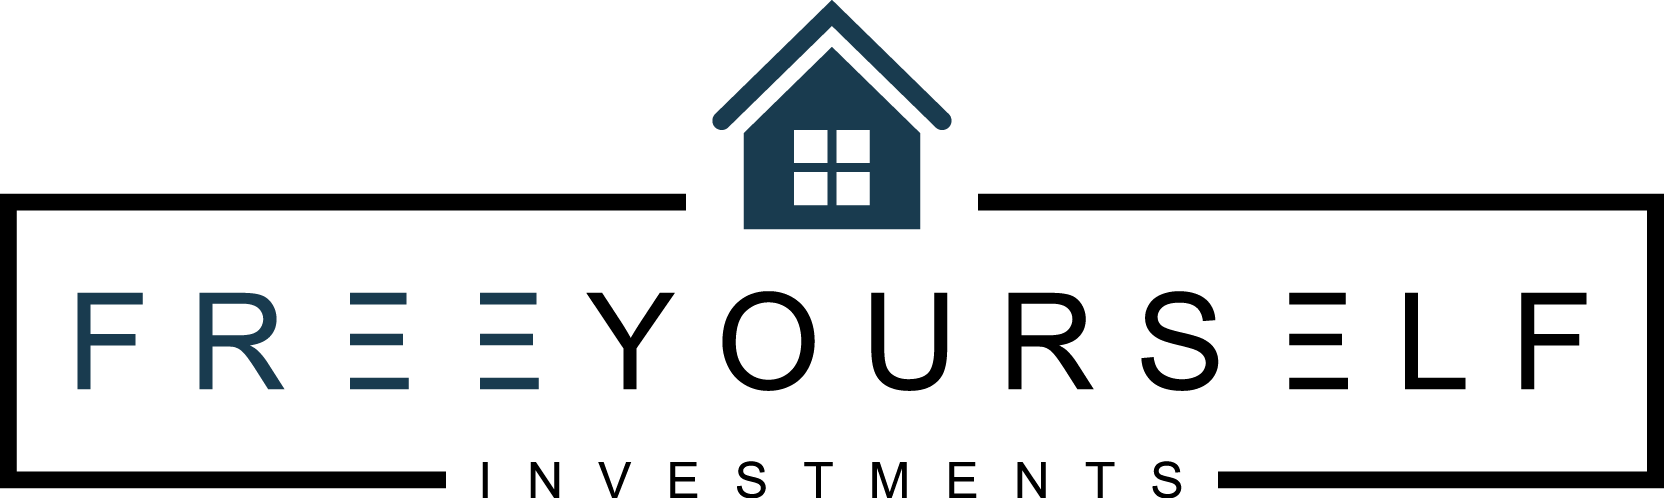 Free YourSelf Investments  logo